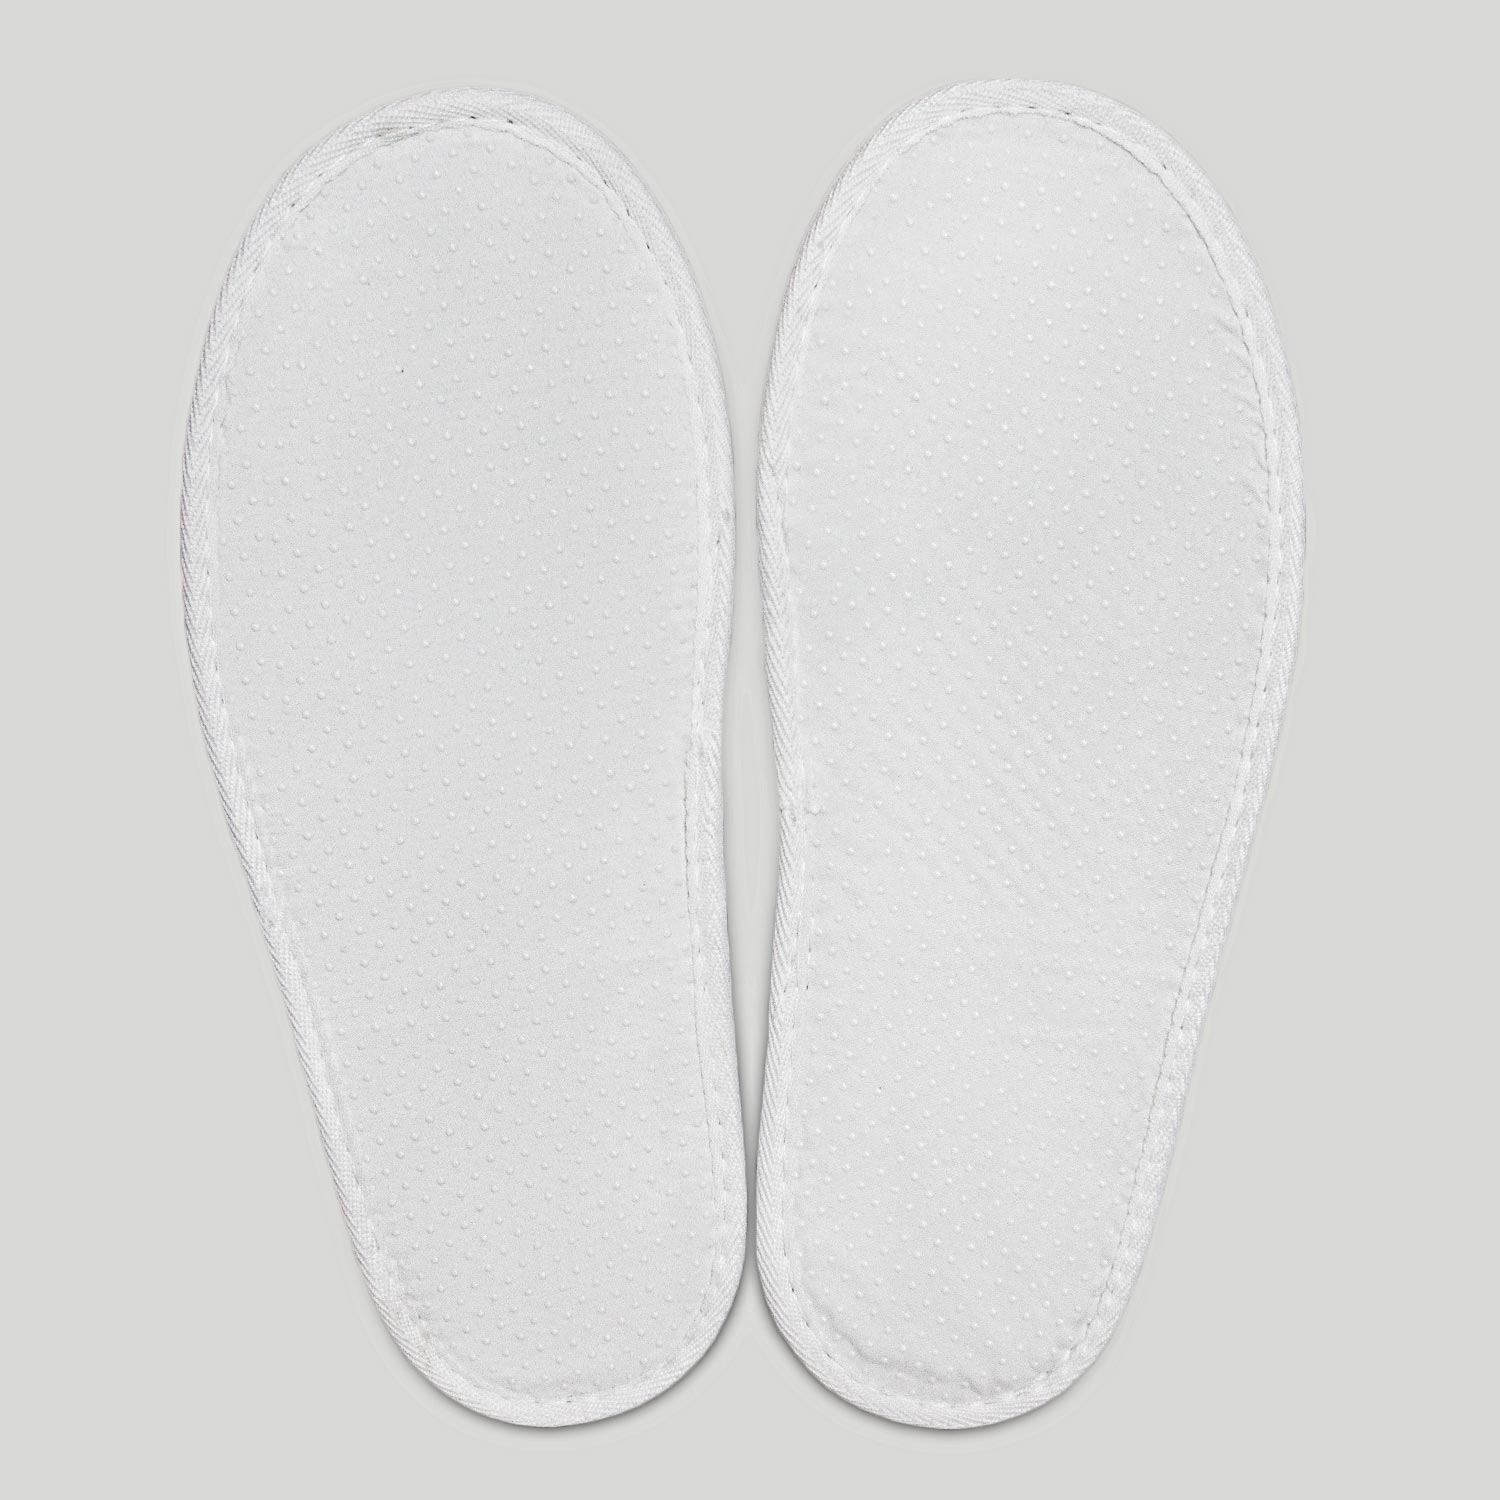 White Thong Adult Plush Slippers-Robemart.com